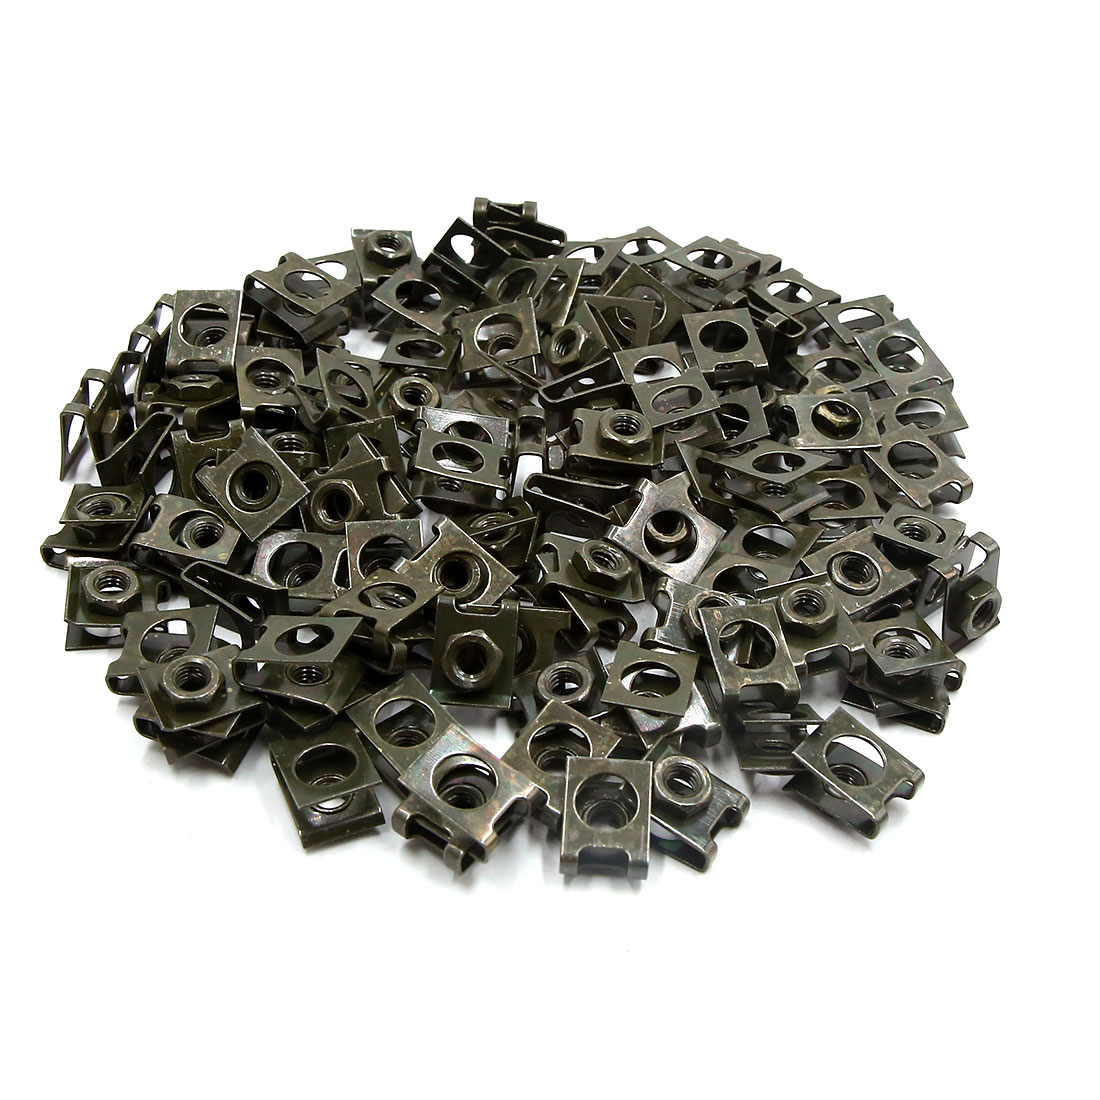 120pcs 5mm Dark Green Metal Motorcycle Car Rivets Door Panel Screw Fastener Clip